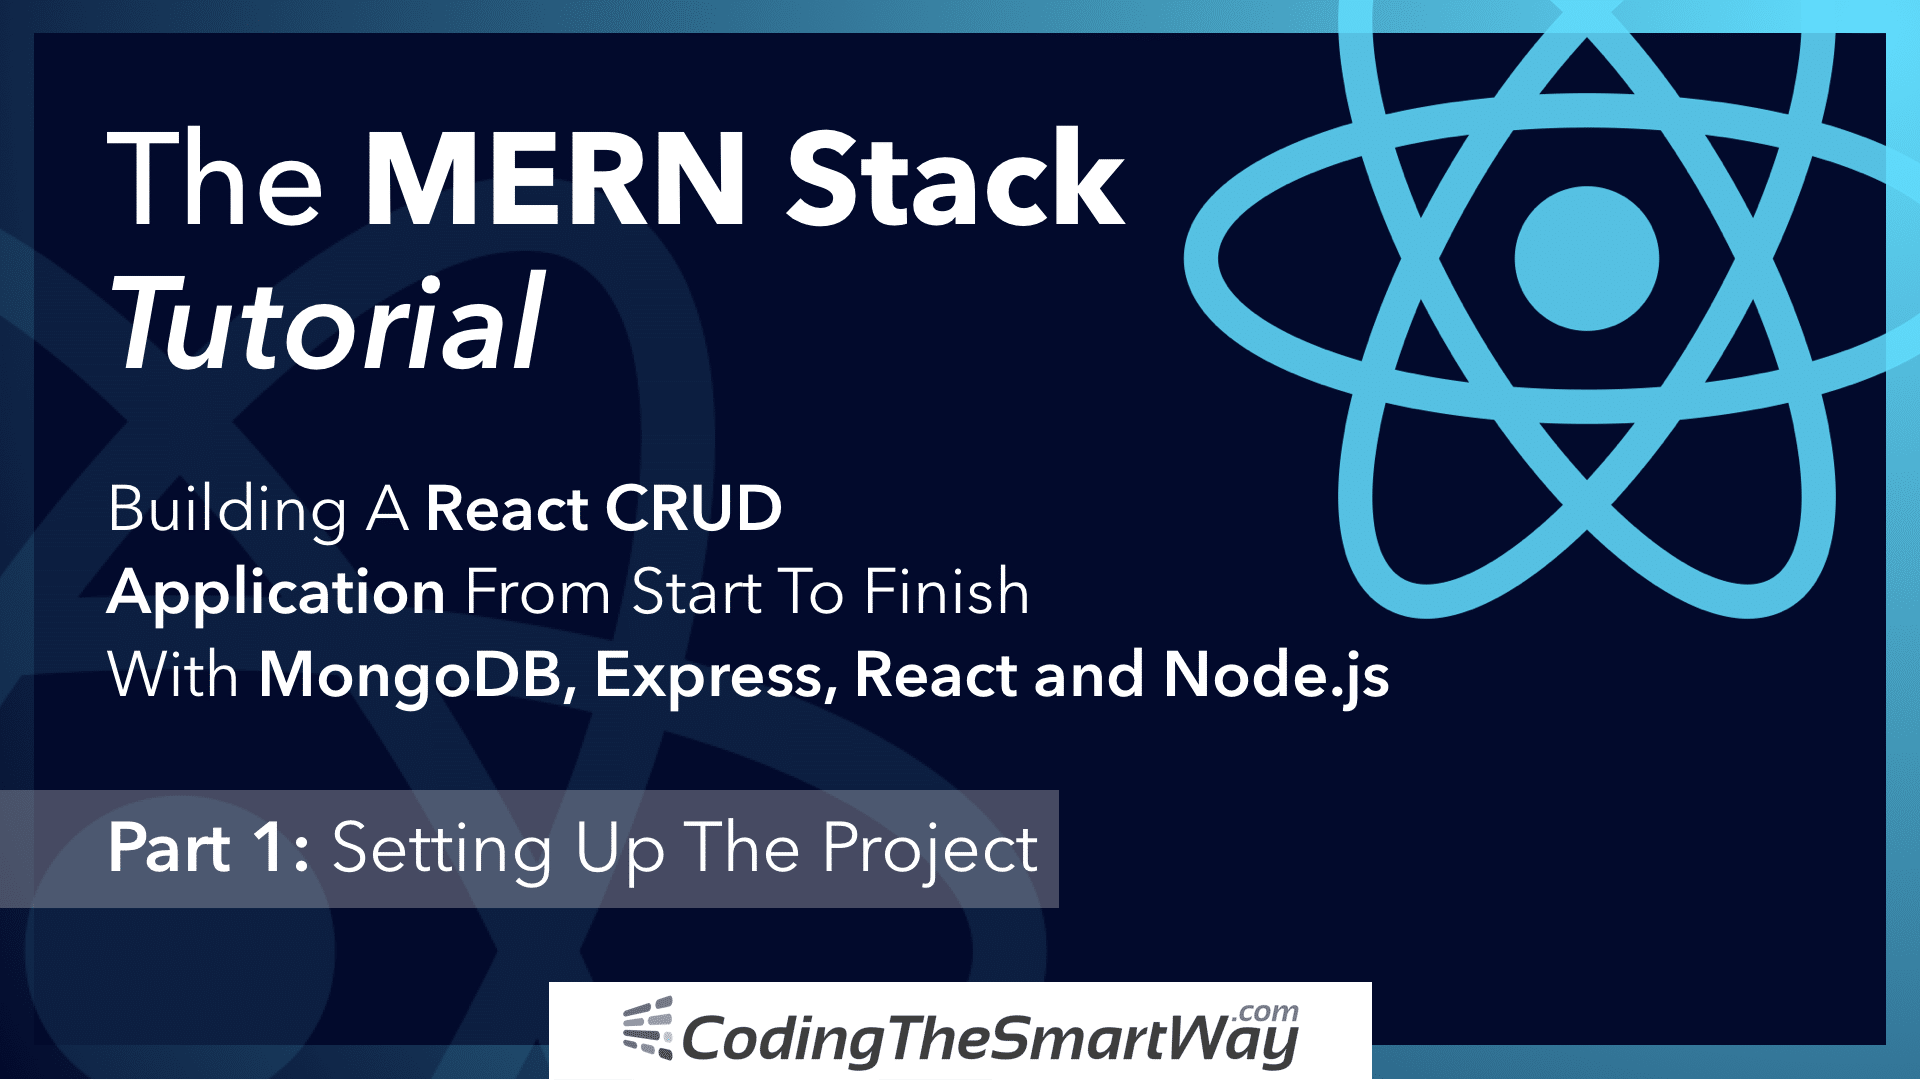 The MERN Stack Tutorial - Building A React CRUD Application